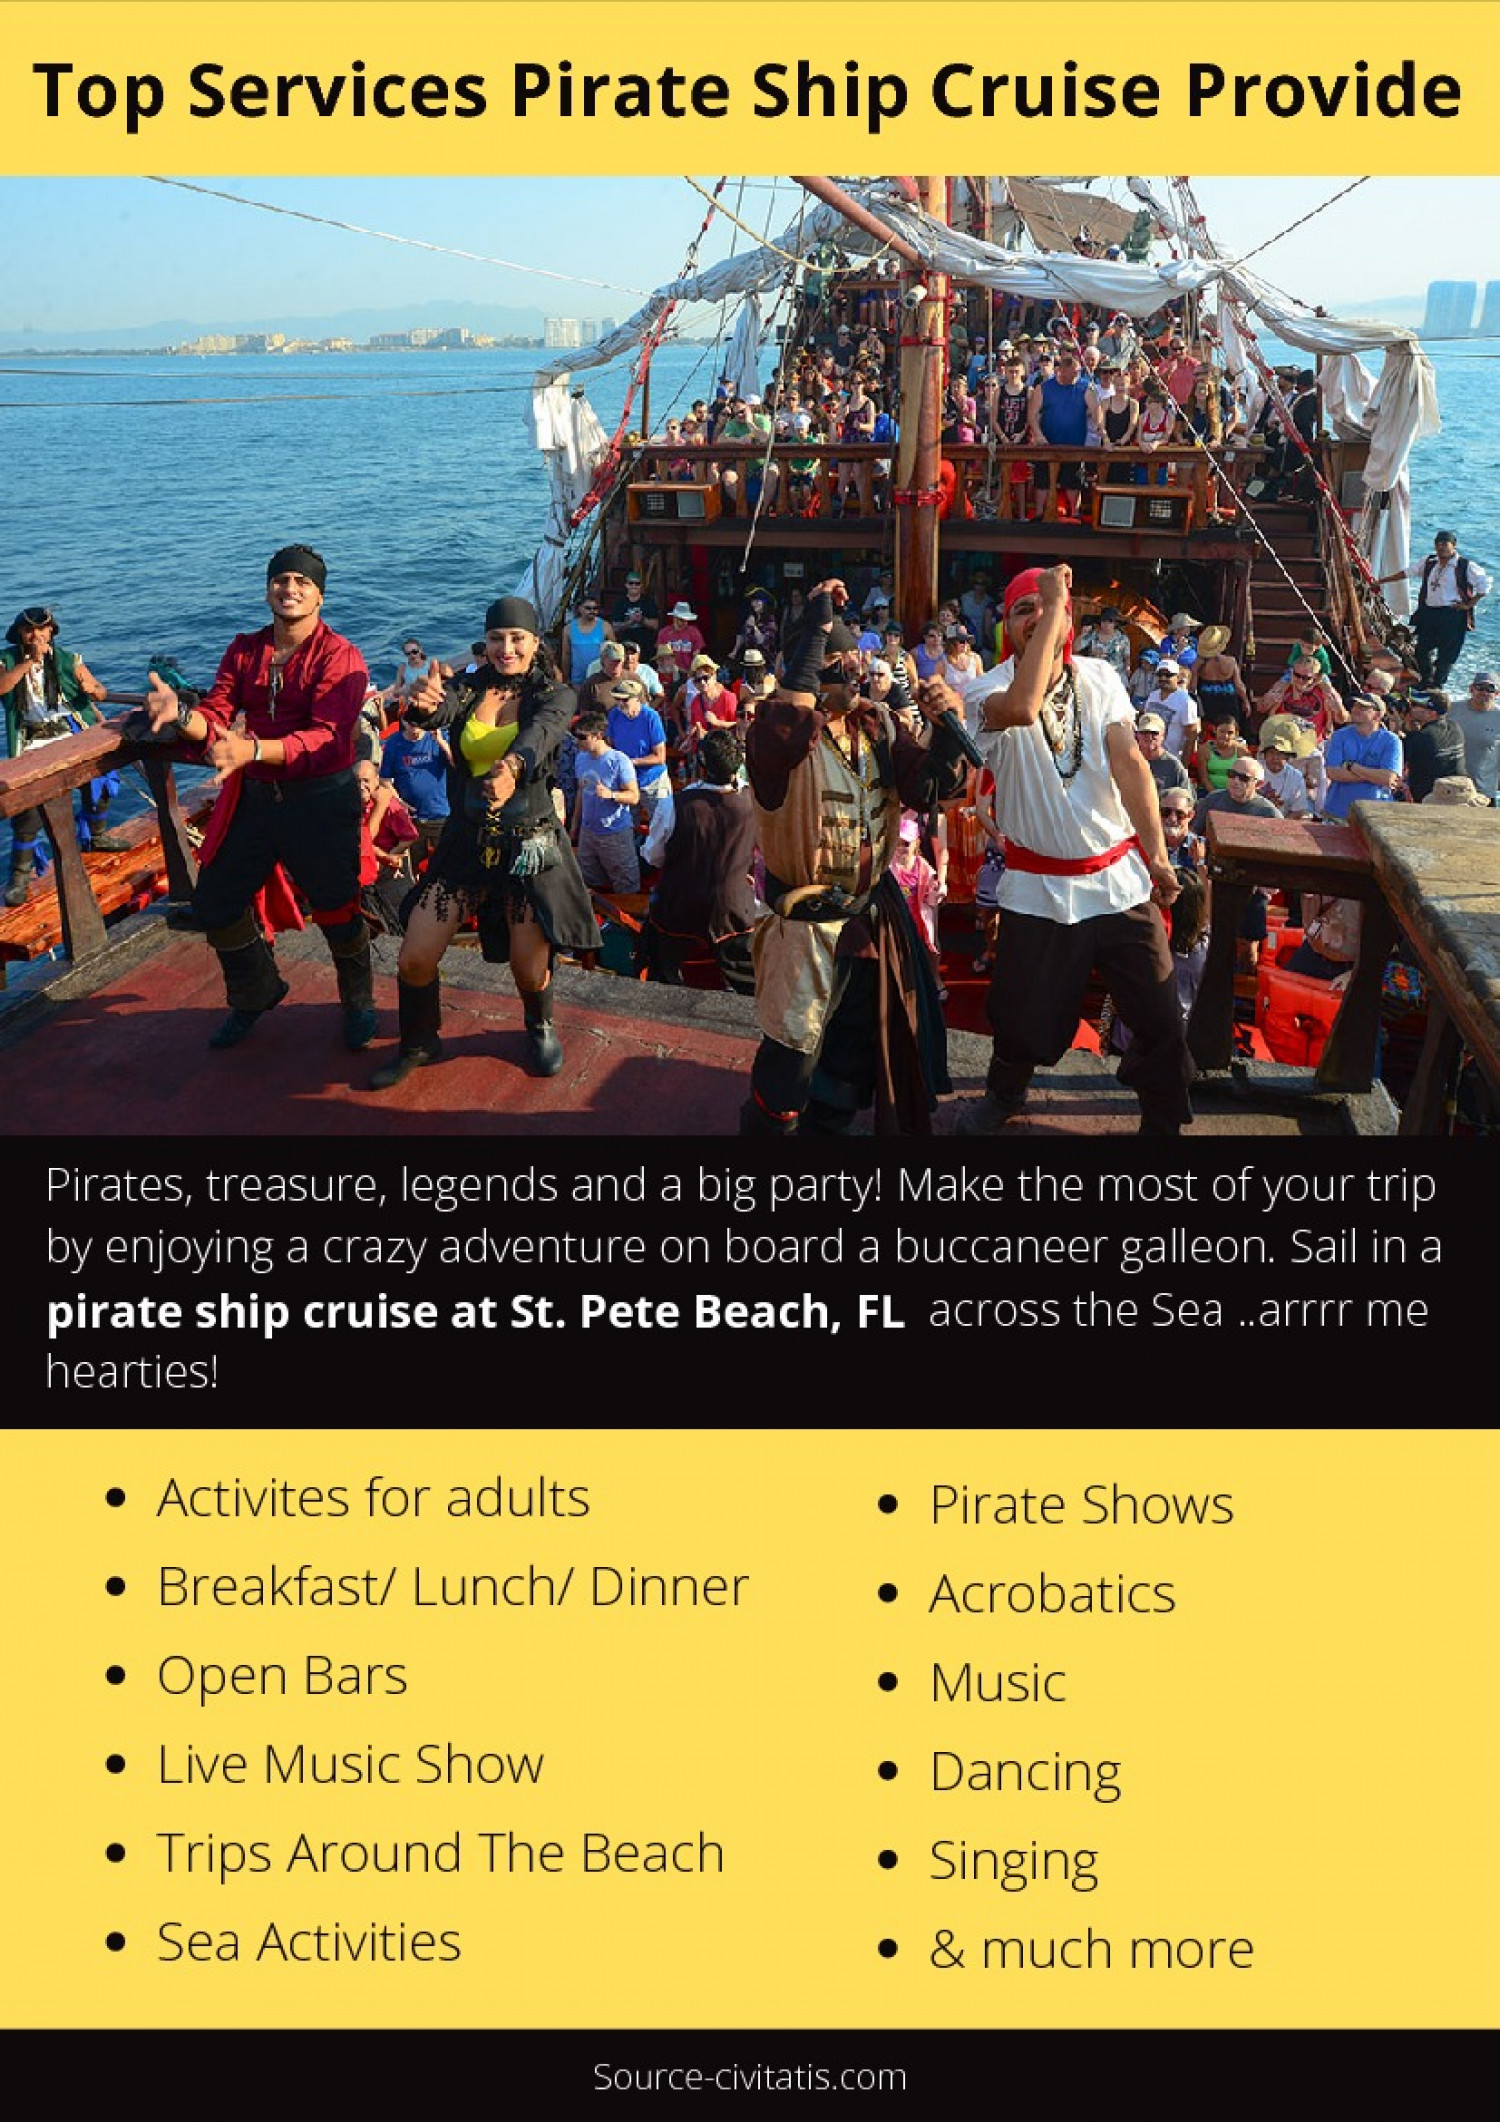 Top Services Pirate Ship Cruise Provide Infographic